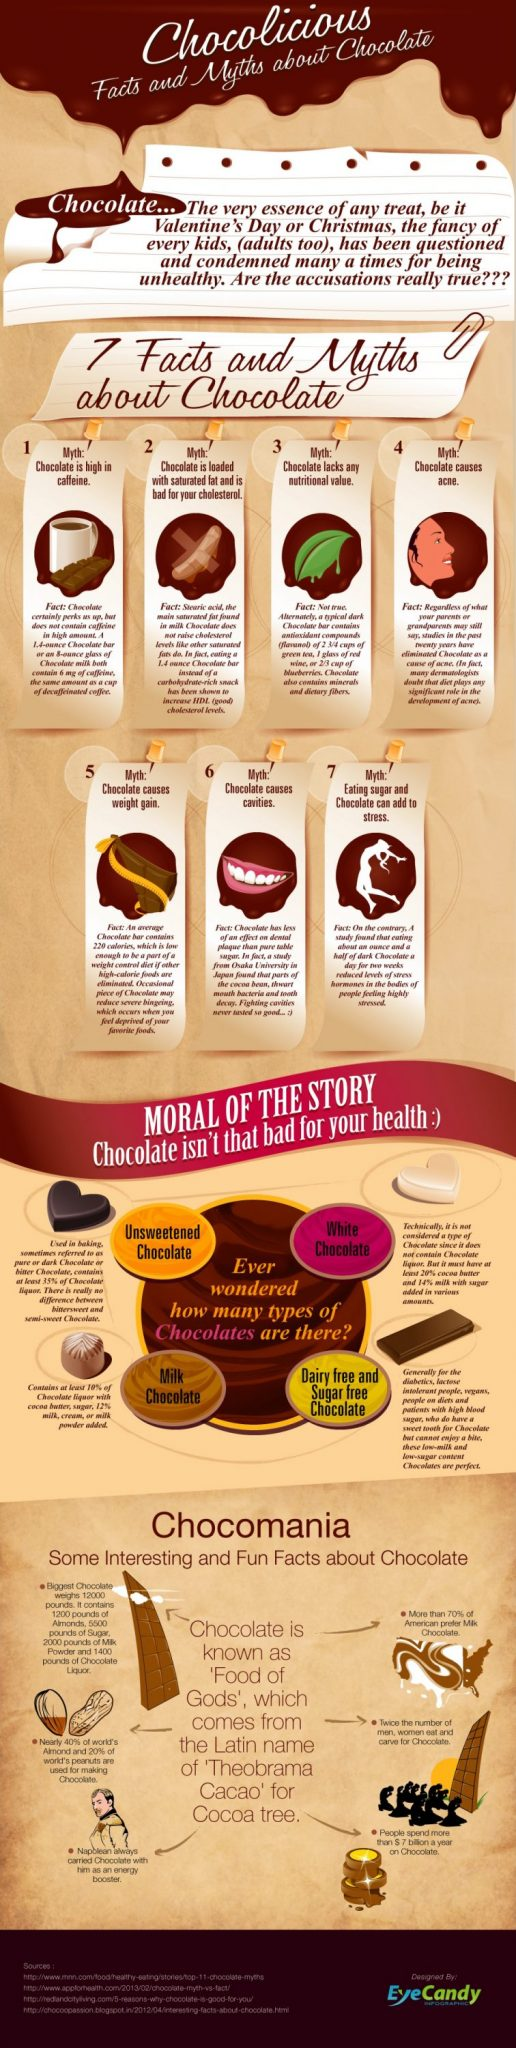 chocolicious-facts-and-myths-about-chocolate